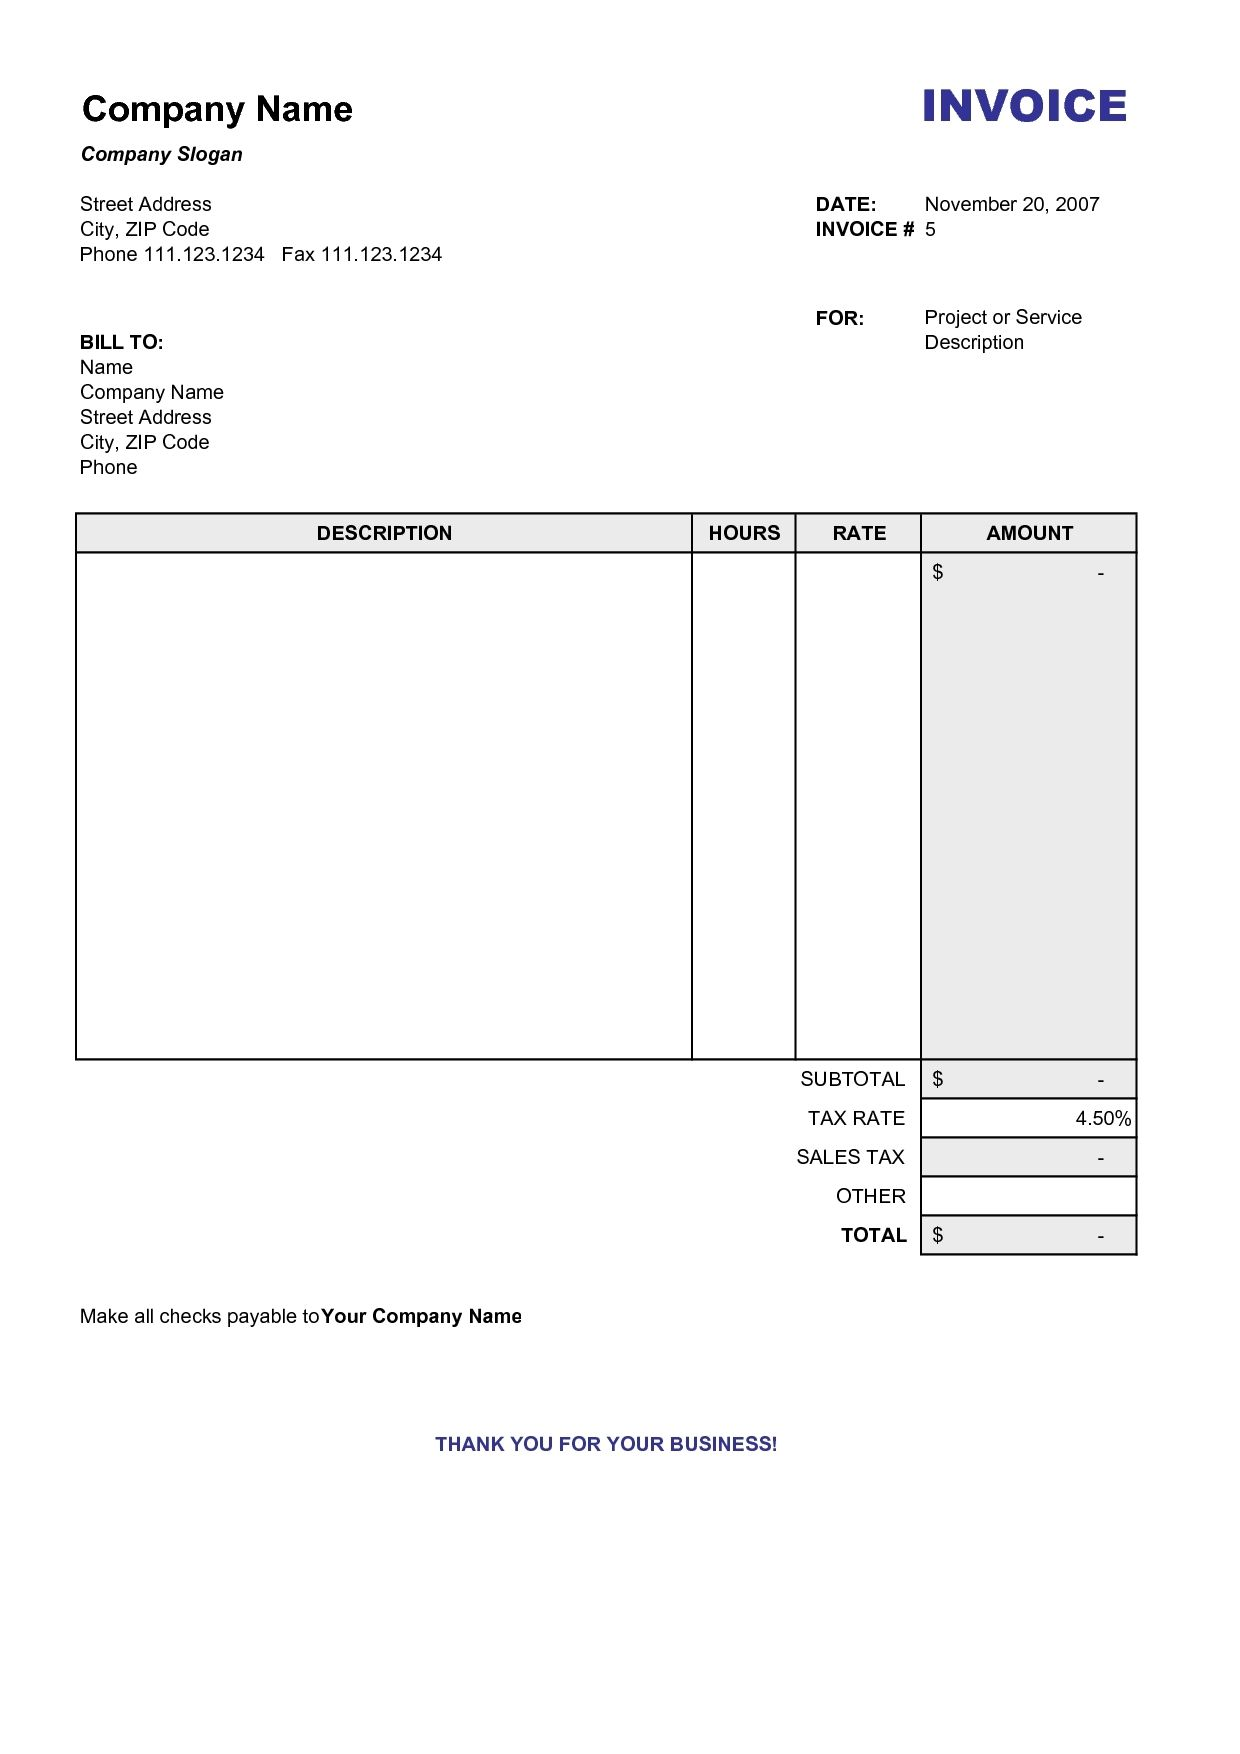 Copy Of A Blank Invoice Invoice Template Free Copy Of Blank - Invoices template free for service business